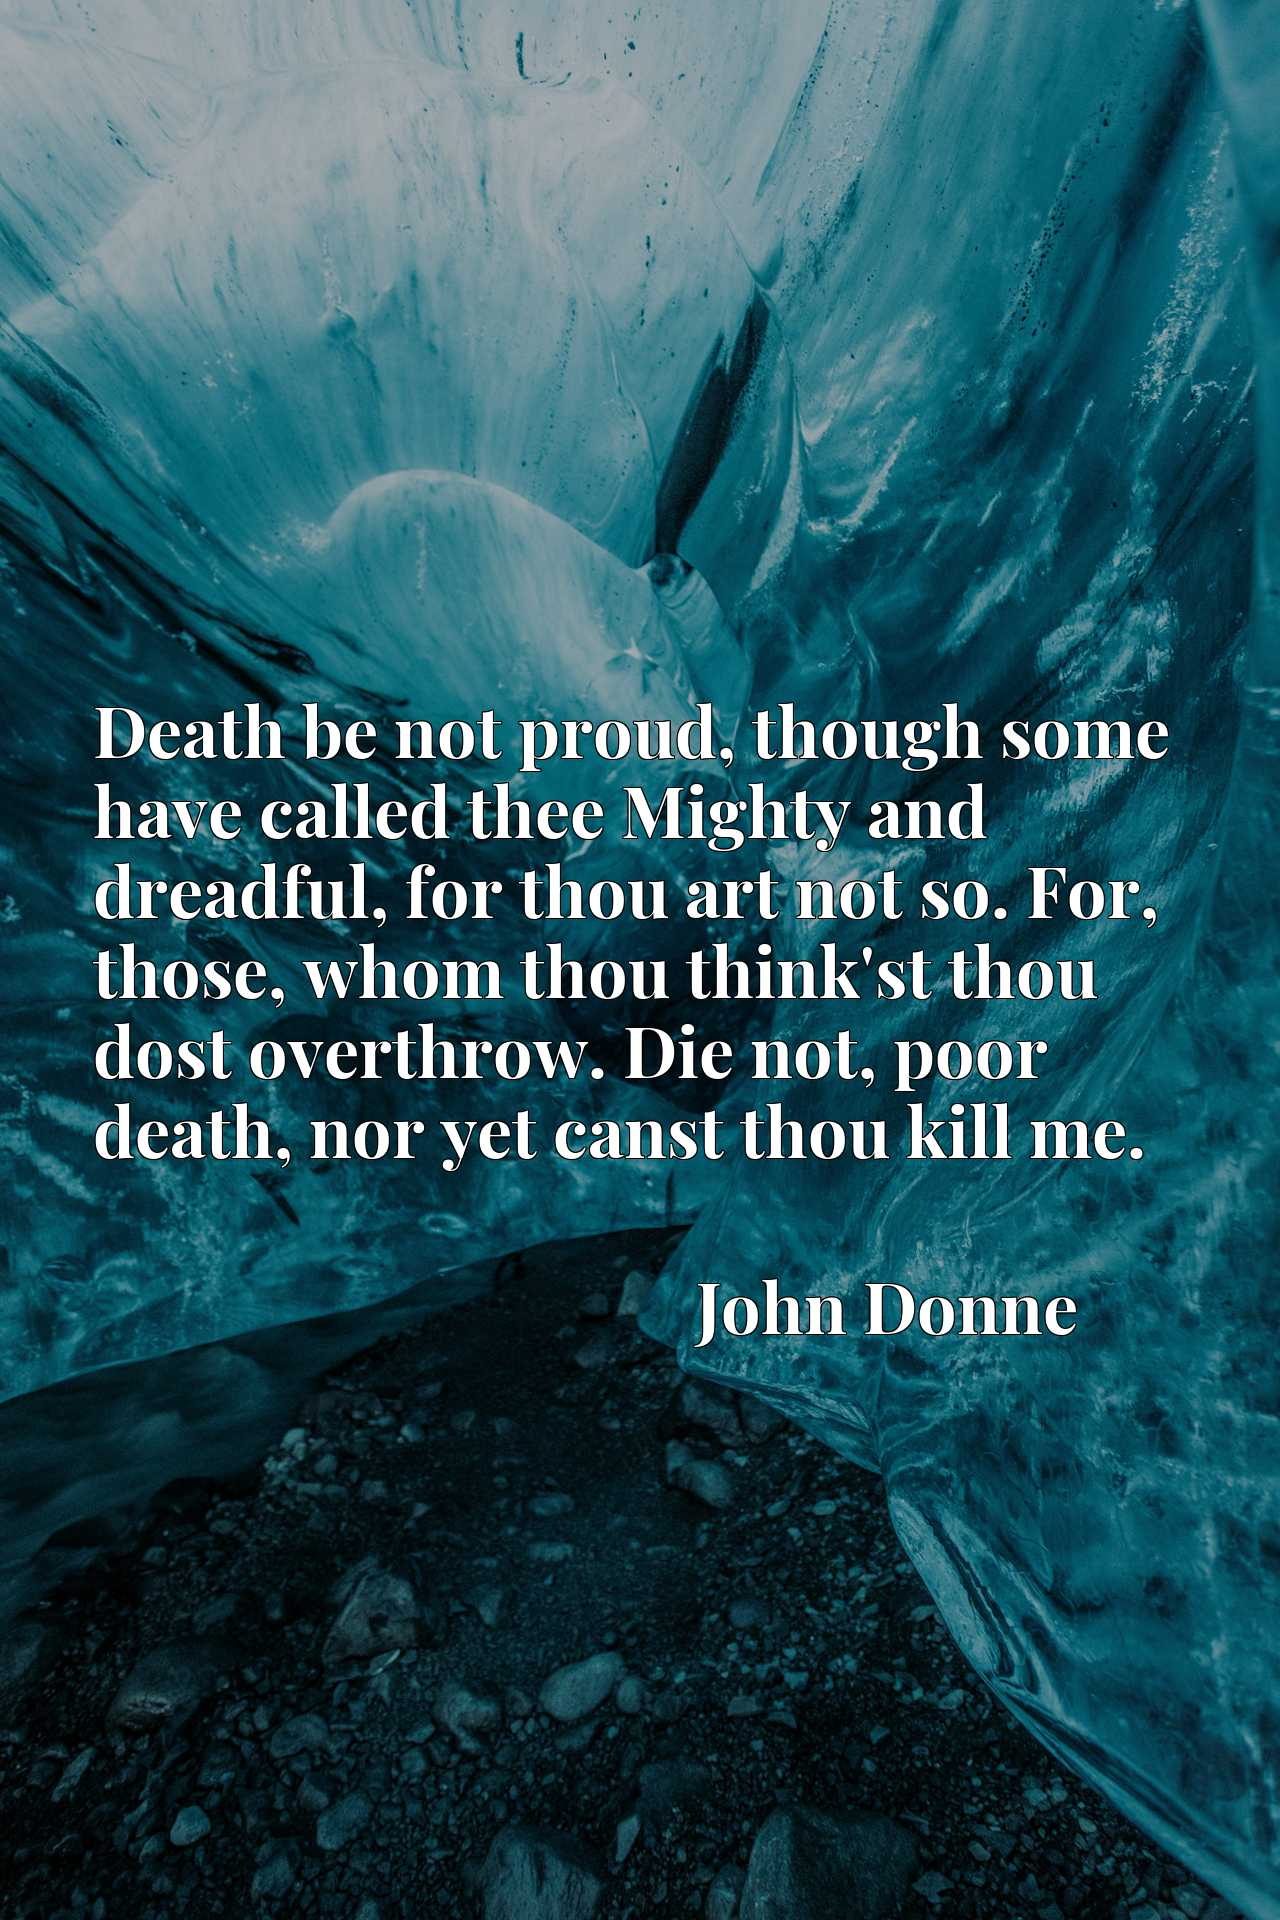 Death be not proud, though some have called thee Mighty and dreadful, for thou art not so. For, those, whom thou think'st thou dost overthrow. Die not, poor death, nor yet canst thou kill me.